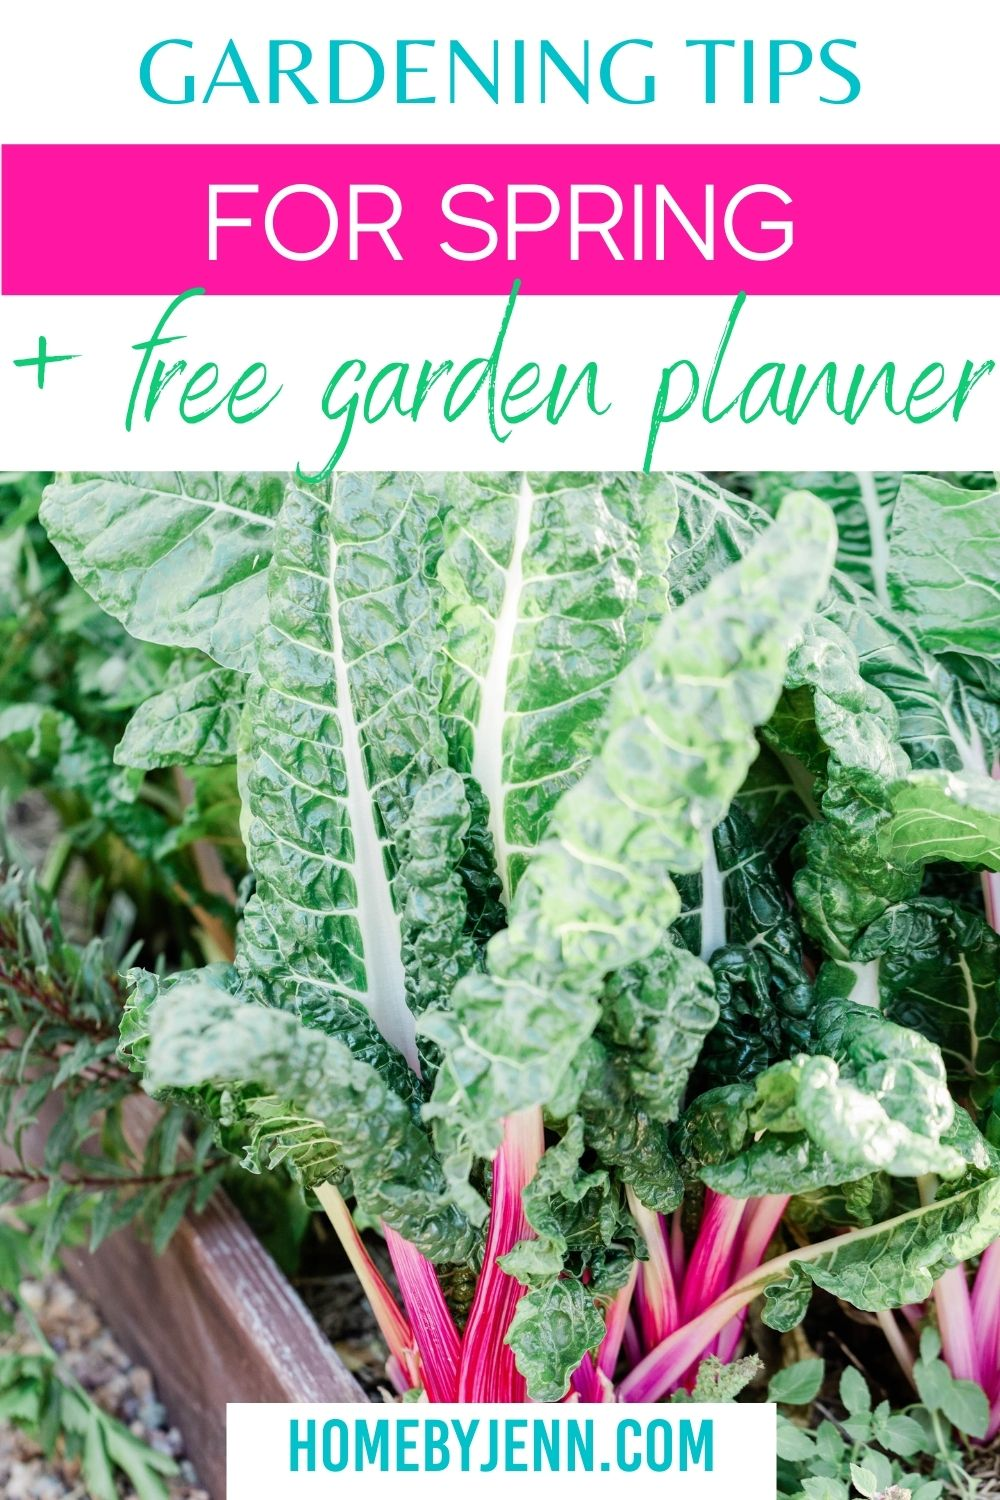 Growing a garden can be so rewarding check out these Spring Gardening Tips to help your garden thrive this year. These Gardening Tips For Spring are easy to follow and will help you grow more in your home garden. via @homebyjenn